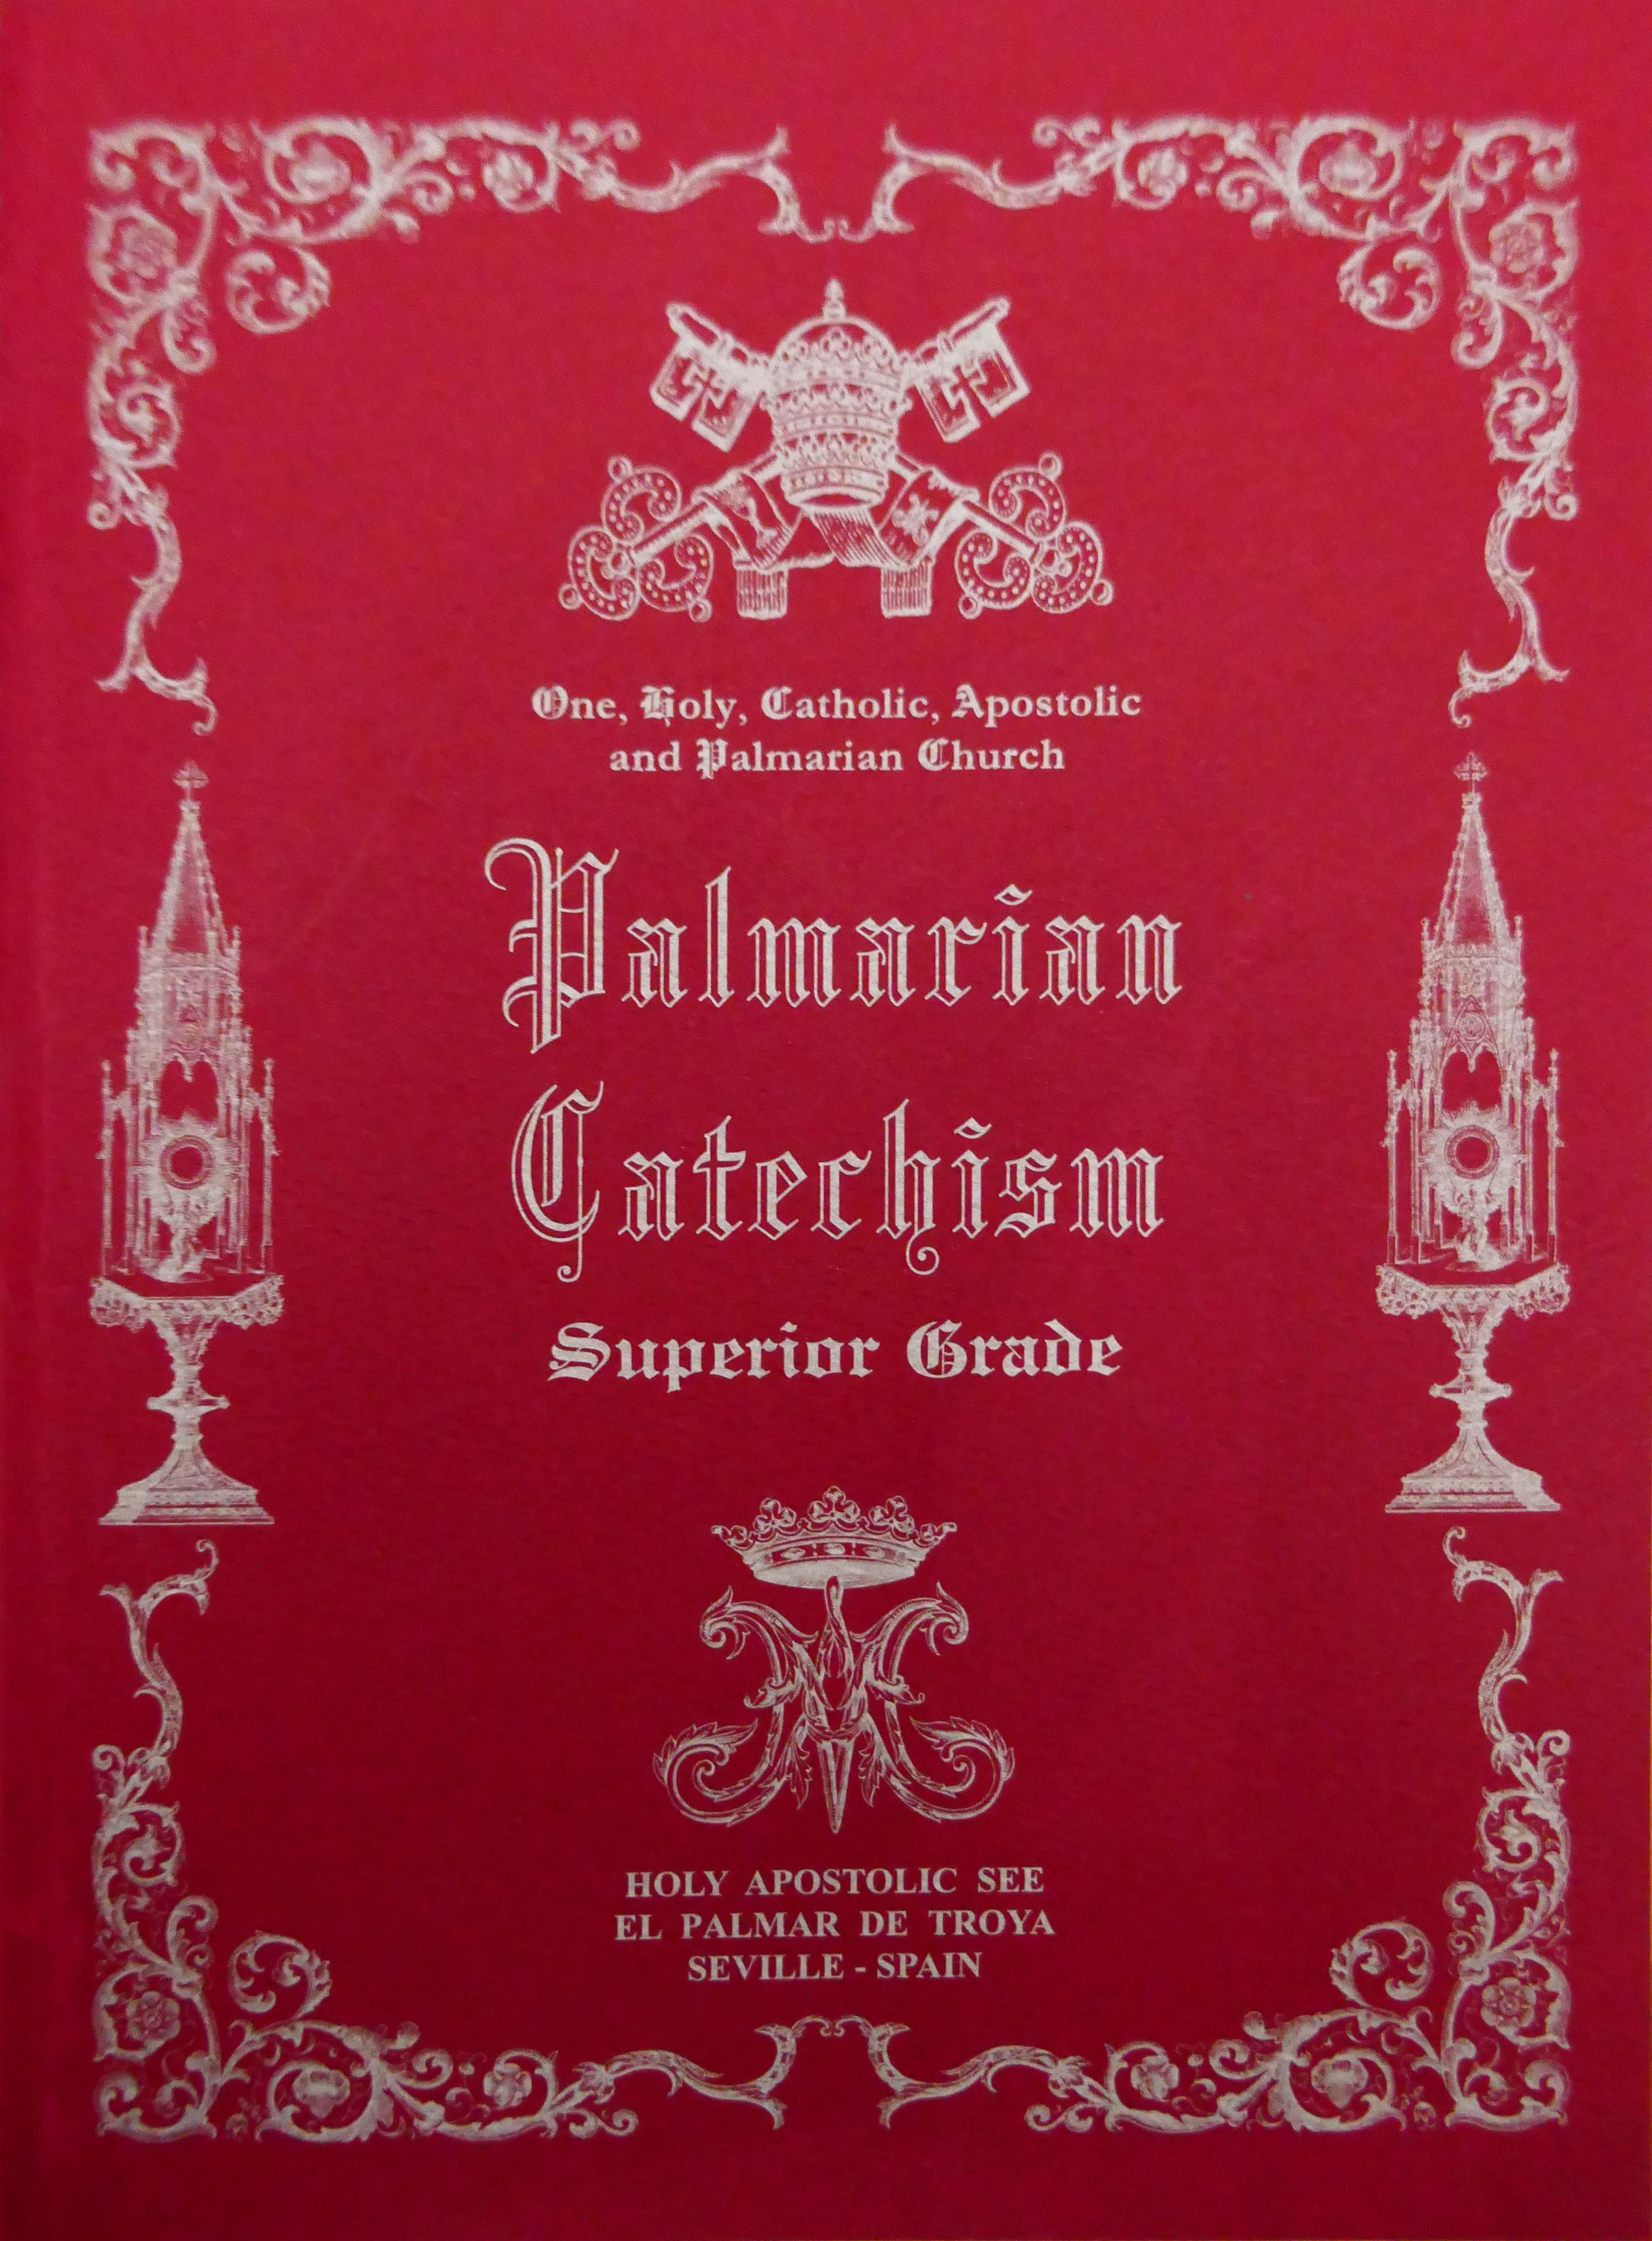 "<a href=""https://www.eglisepalmarienne.org/wp-content/uploads/2019/03/Extracts-from-the-Palmarian-Catechism.pdf"" title=""Extracts from the Palmarian Catechism"">Extracts from the Palmarian Catechism <br><br>En Savoir Plus</a>"